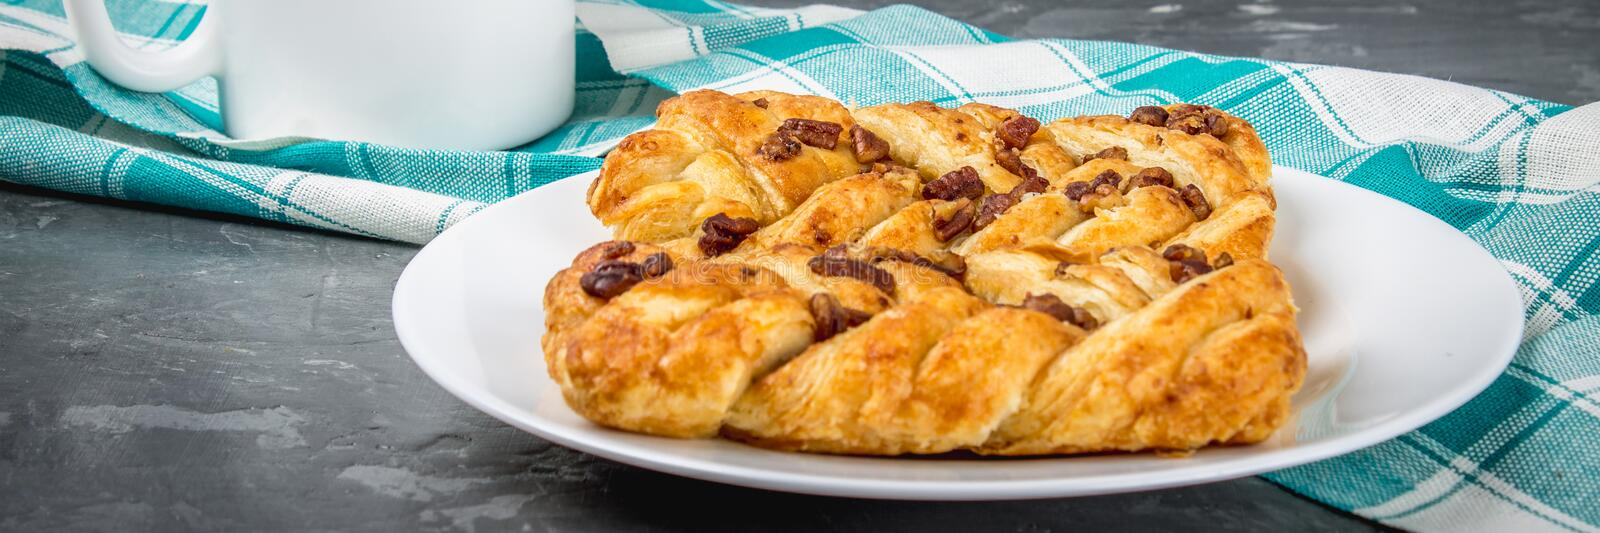 Danish pastry maple pecan with nuts and maple syrup, banner stock image